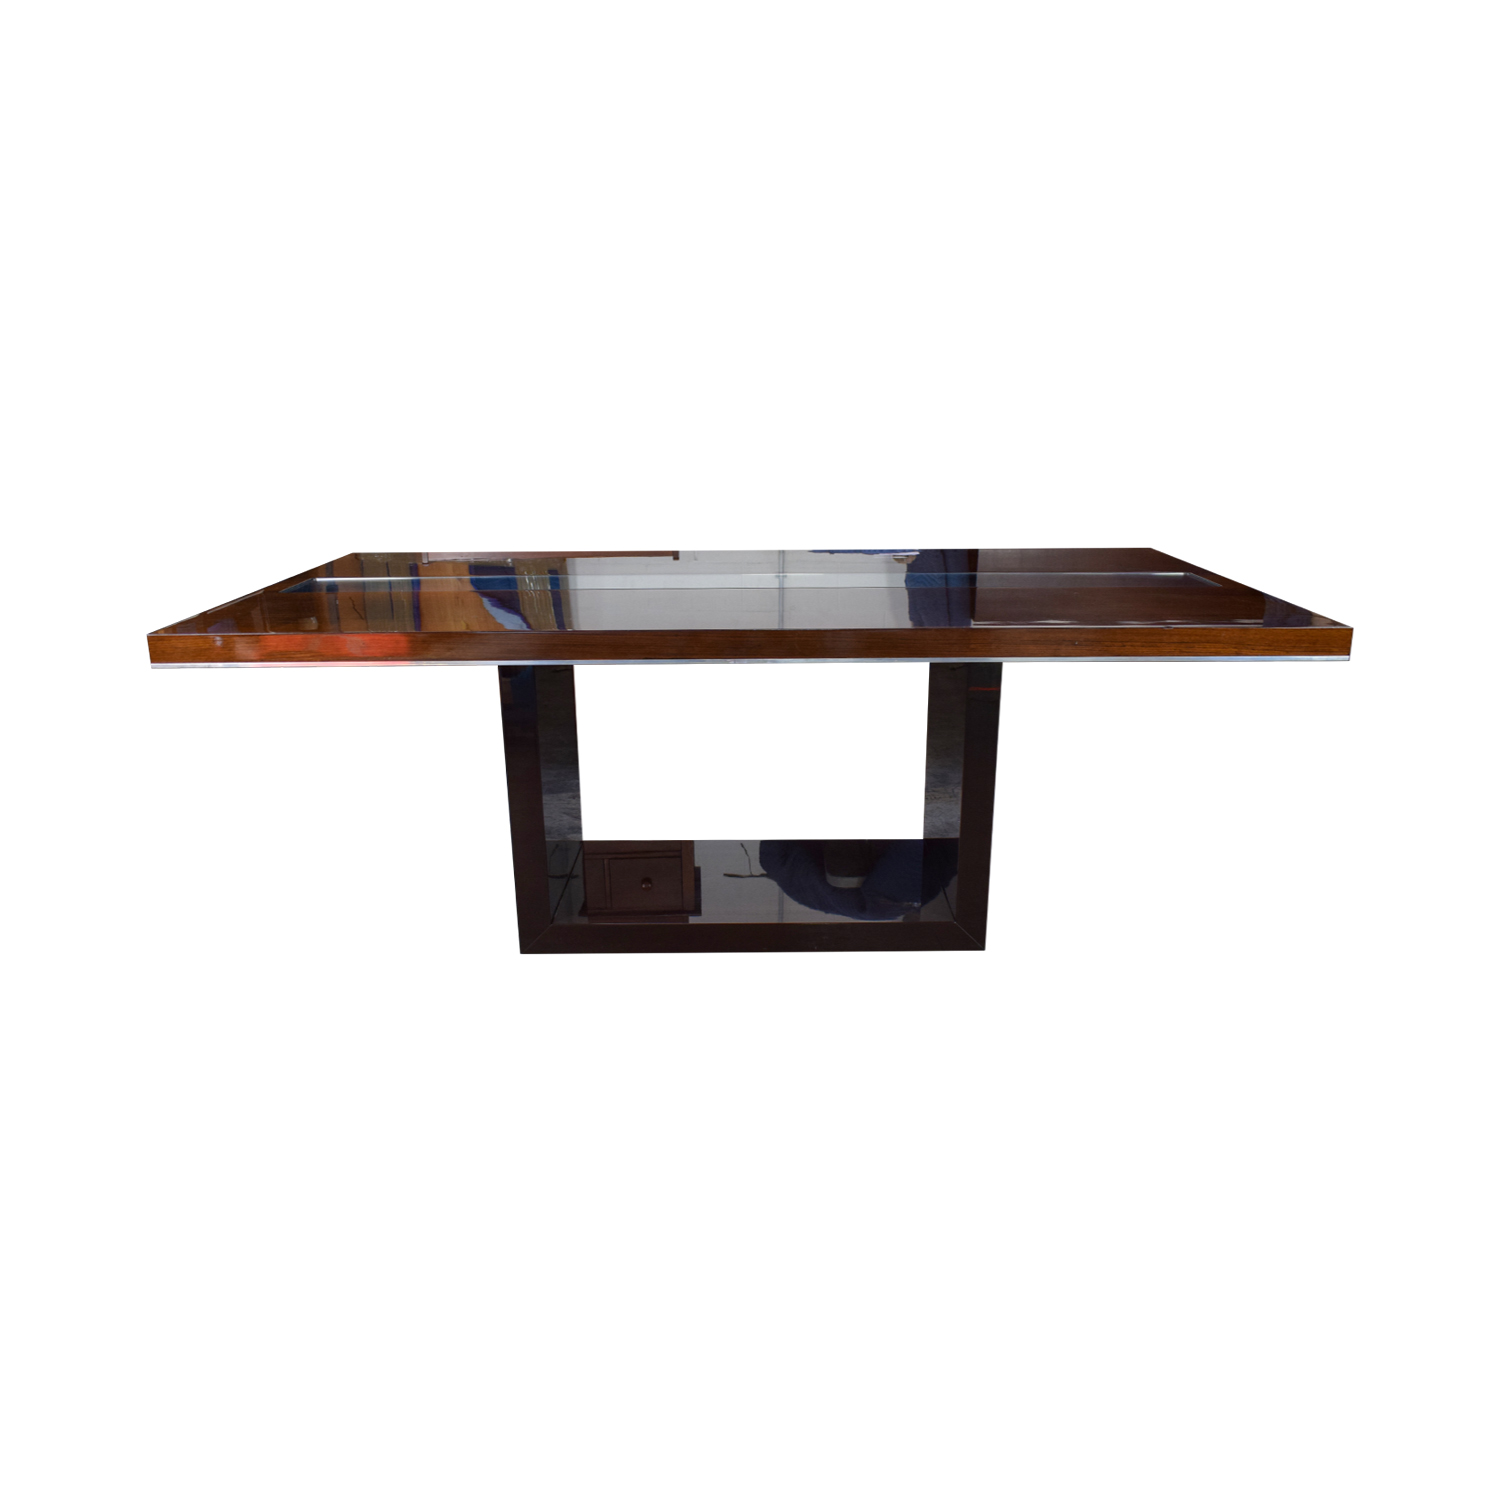 Prissy Buy Rosewood Extendable Table Online Off Rosewood Extendable Table Tables Extendable Table Round Extendable Table 12 houzz-03 Extendable Dining Table